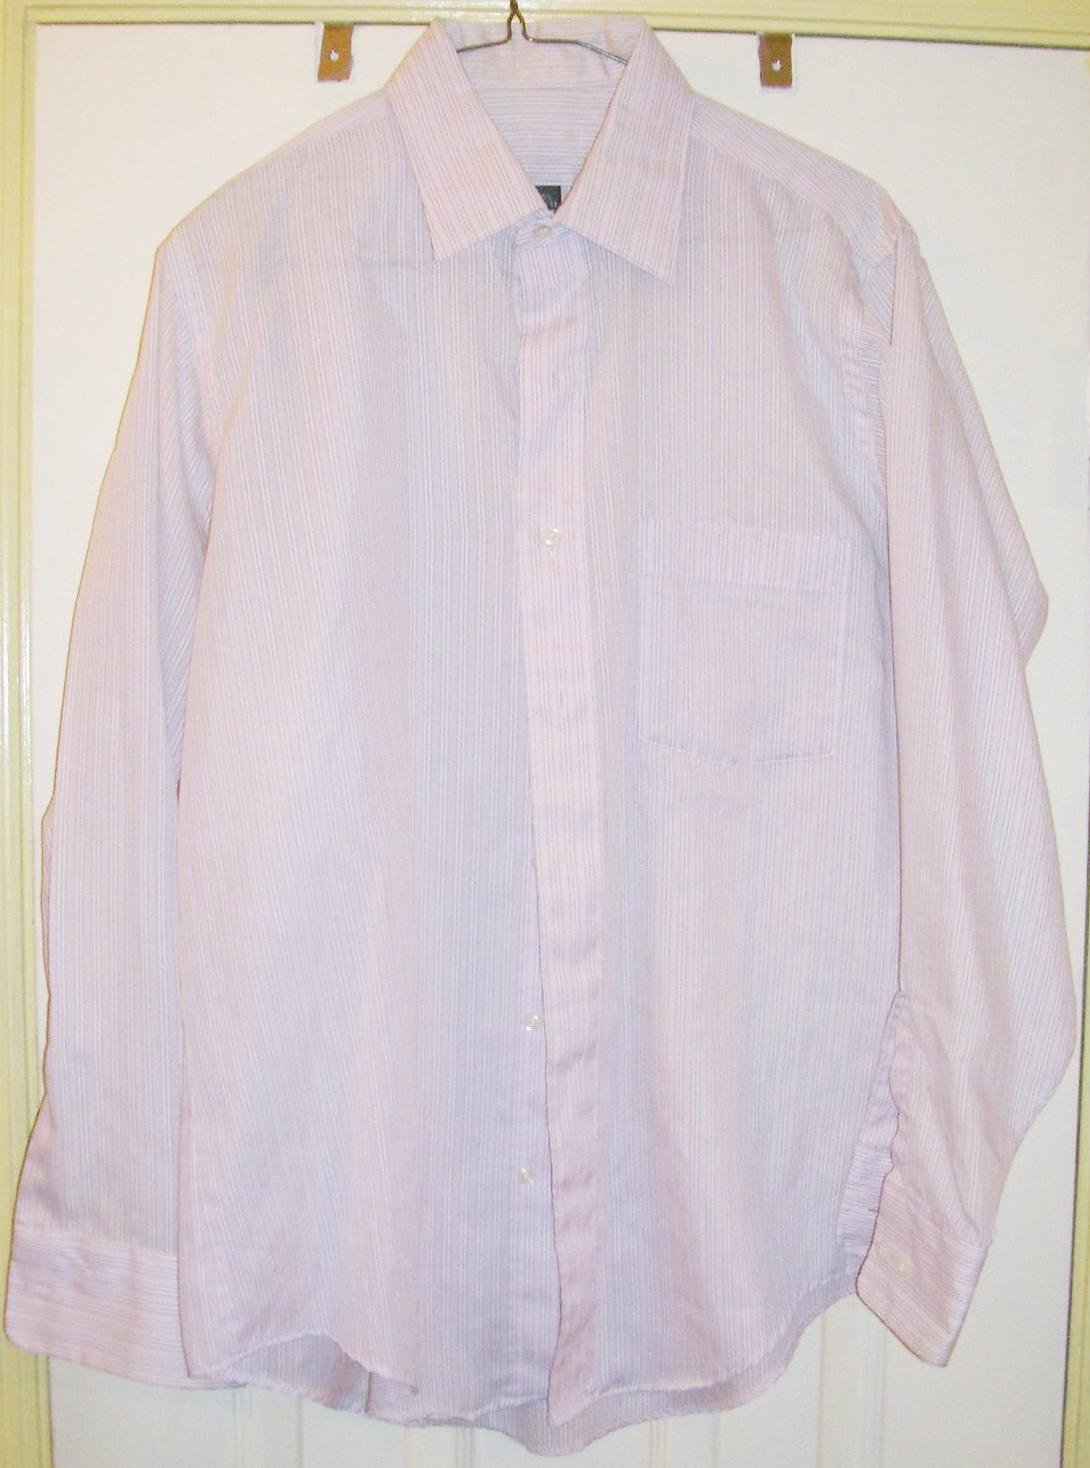 Vintage men 39 s striped dress shirt size 15 1 2 for Size 15 dress shirt